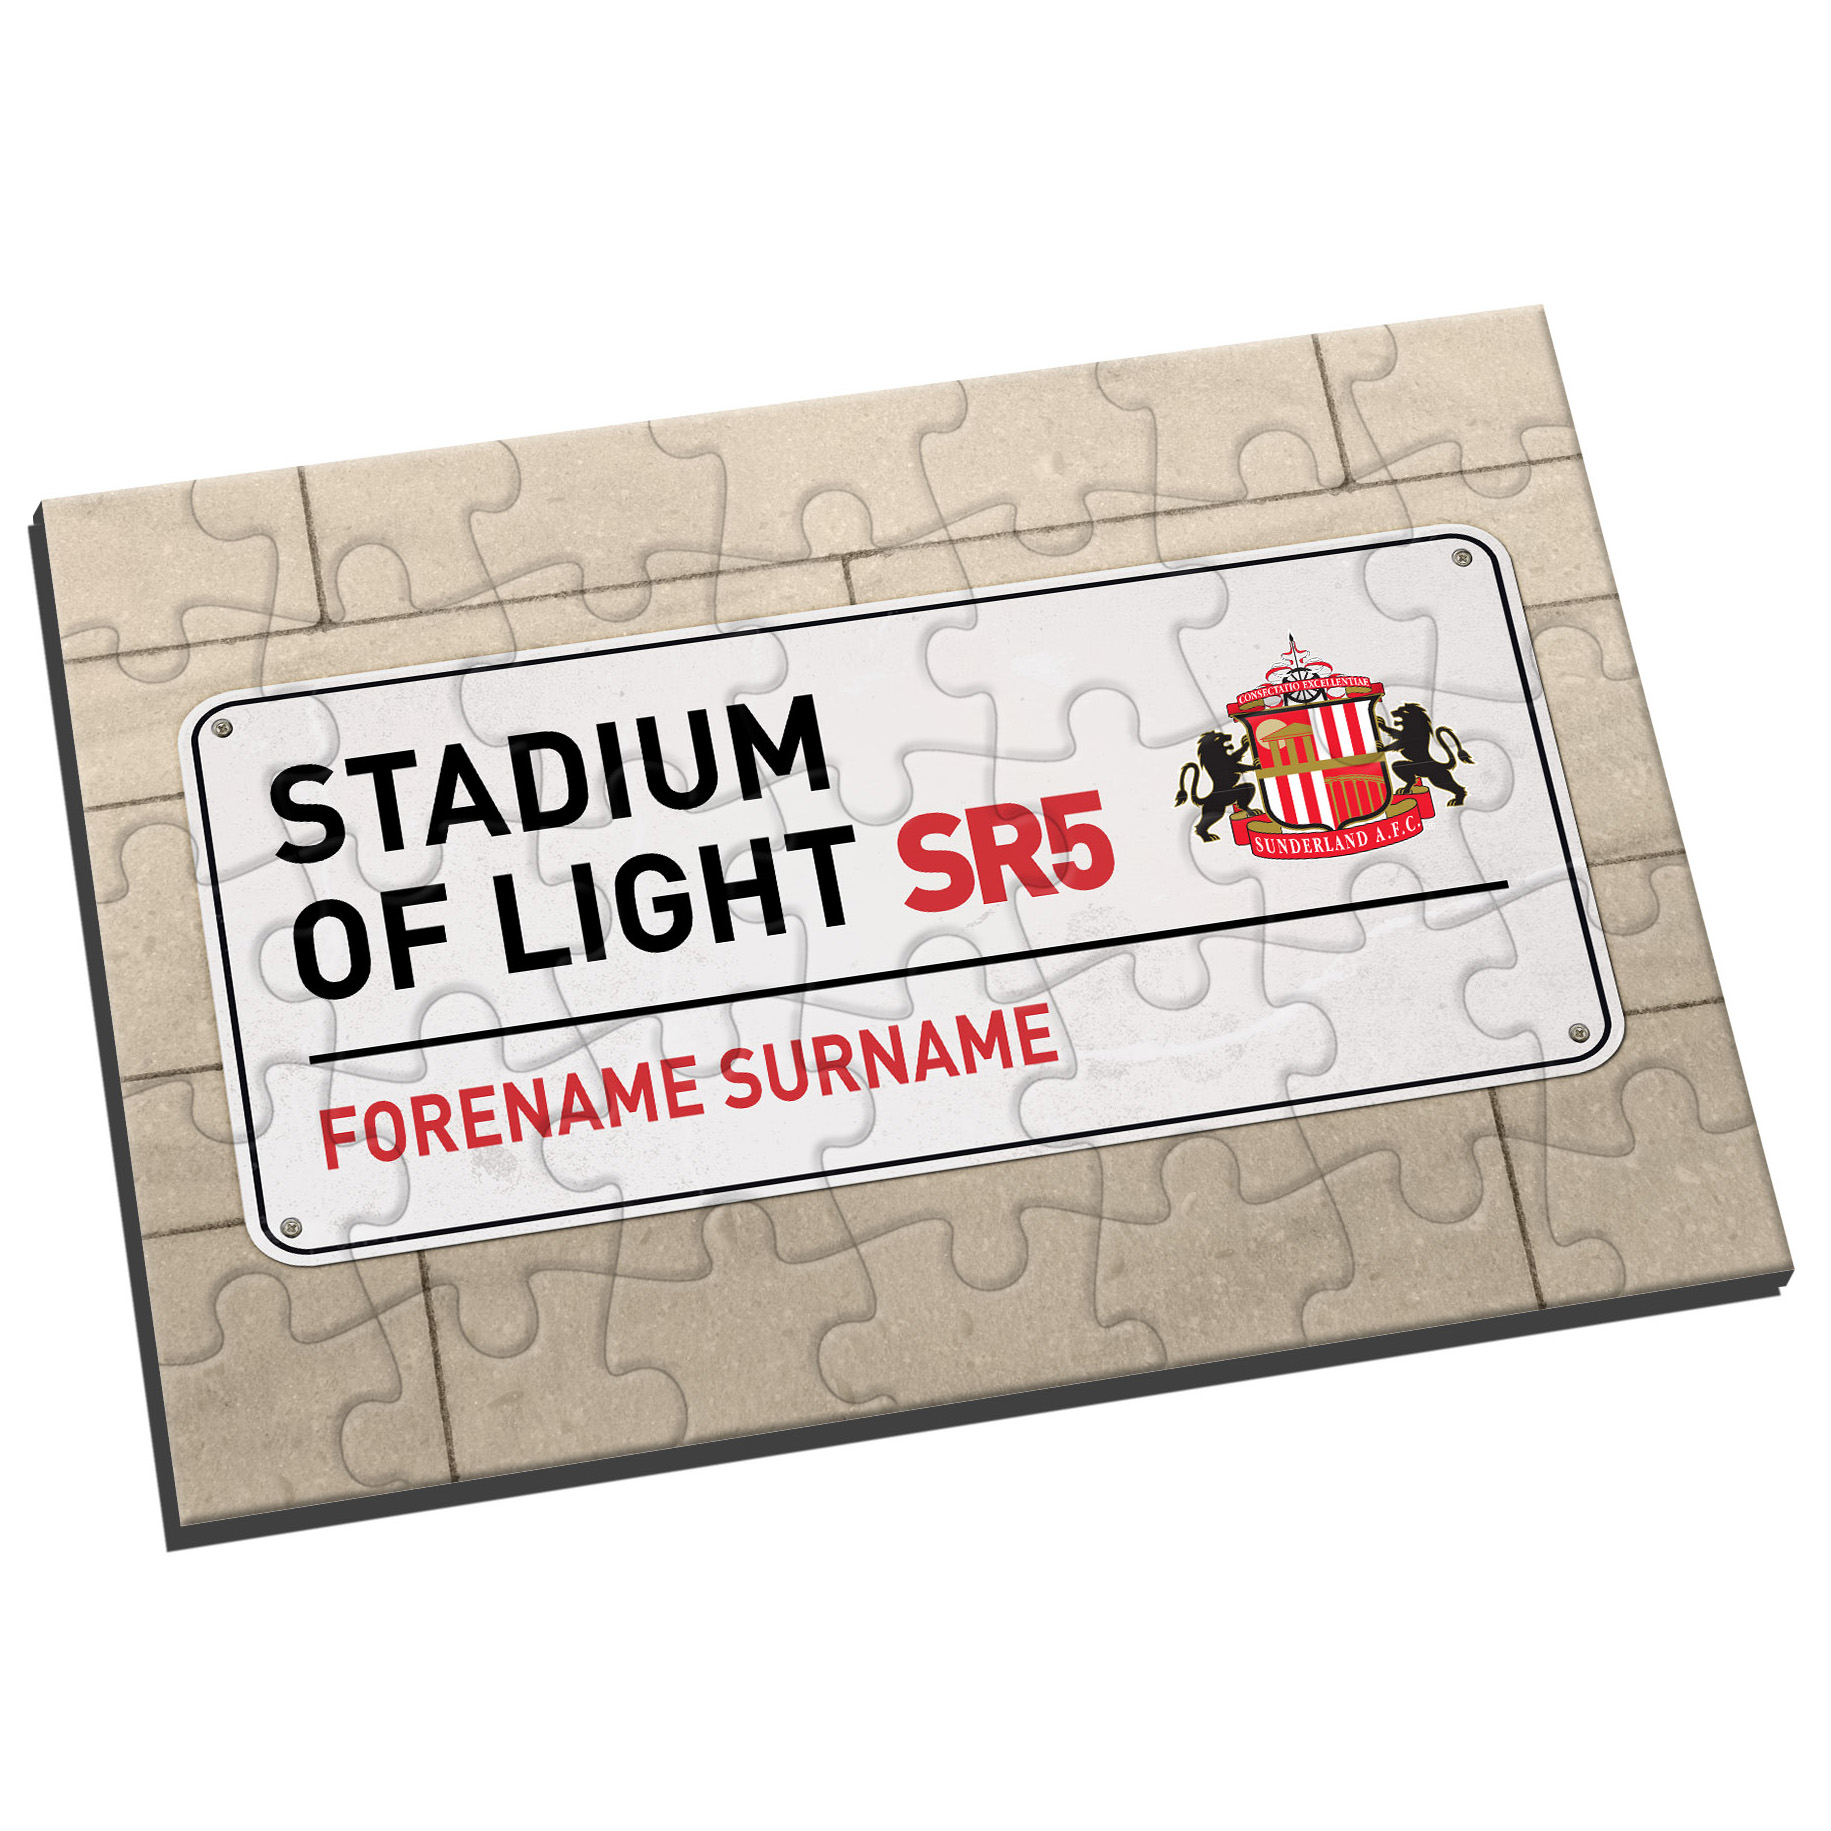 Sunderland Personalised Street Sign Jigsaw